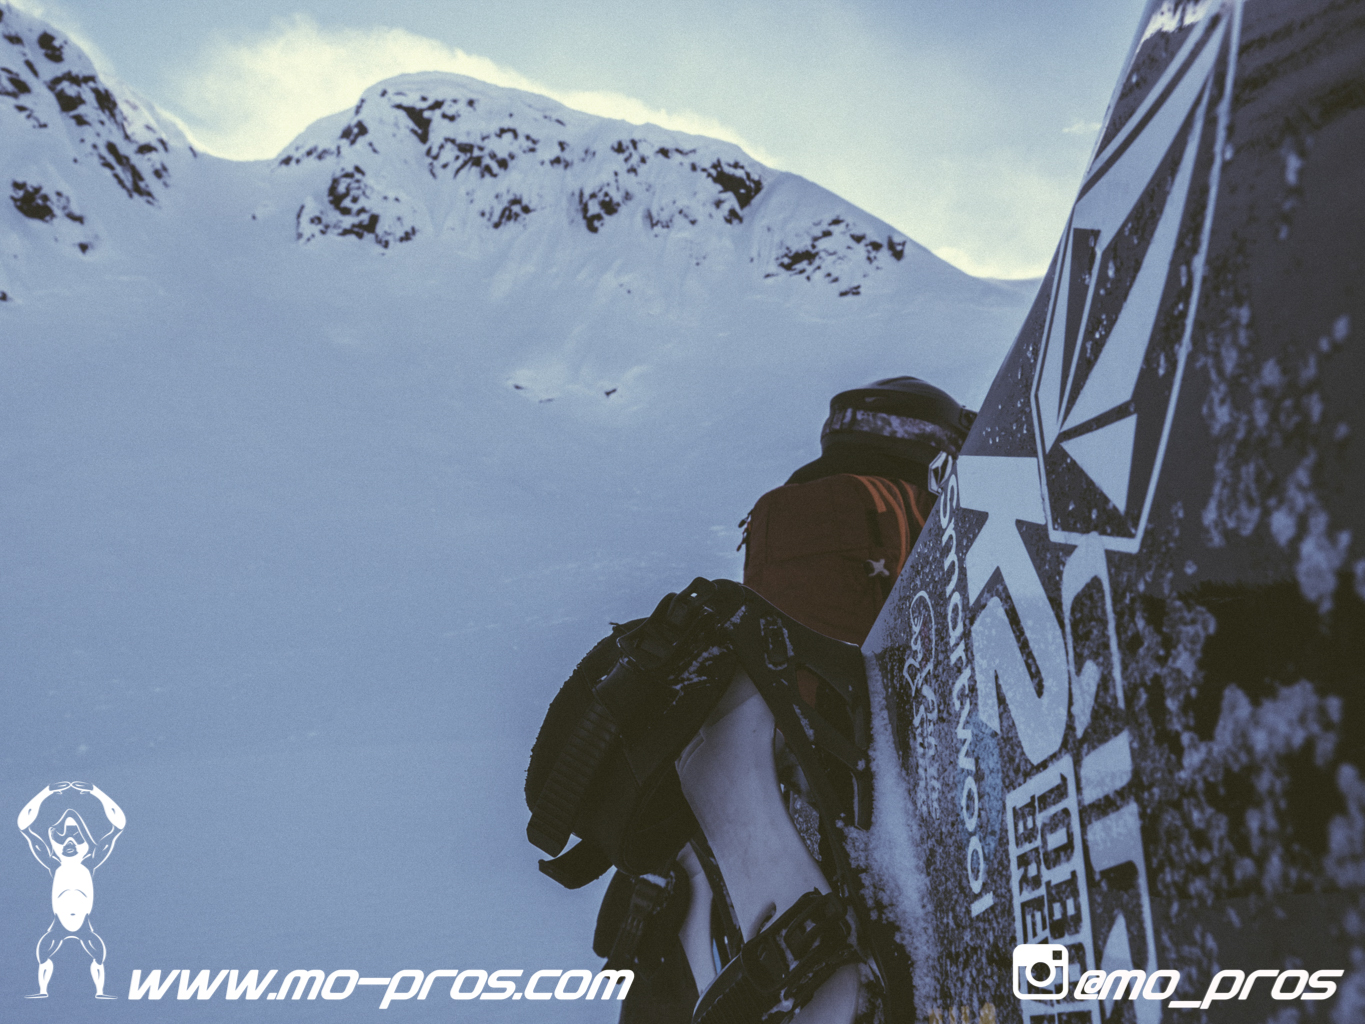 8_CFR rack_Cheetah Factory Racing_Snowboard rack_snowboard_snowmobile bag_Snowmobile_timbersled bag_gas Rack_Gear_Gun Rack_LinQ Snowboard Ski_Ski_Snowbike_Timbersled Rack_Tsaina Rack_Snowboarding_Tim.jpg